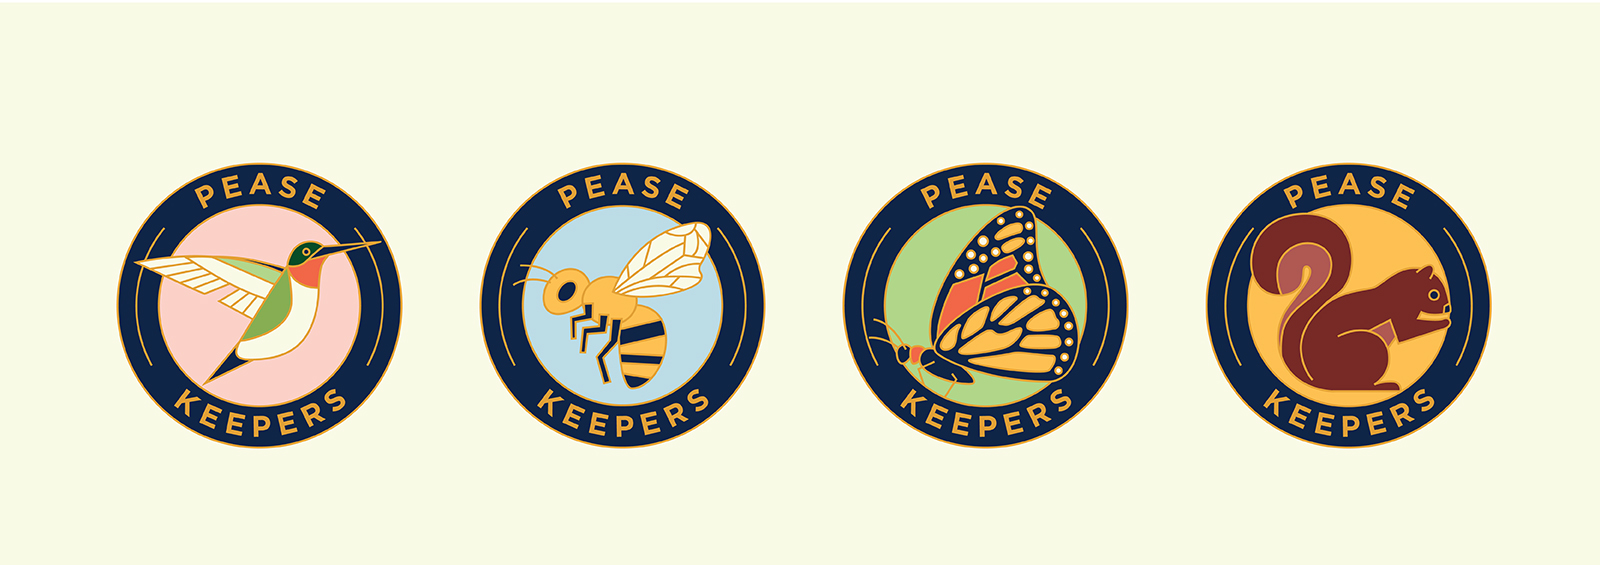 """Row of four illustrated """"Pease Keeper"""" badges."""